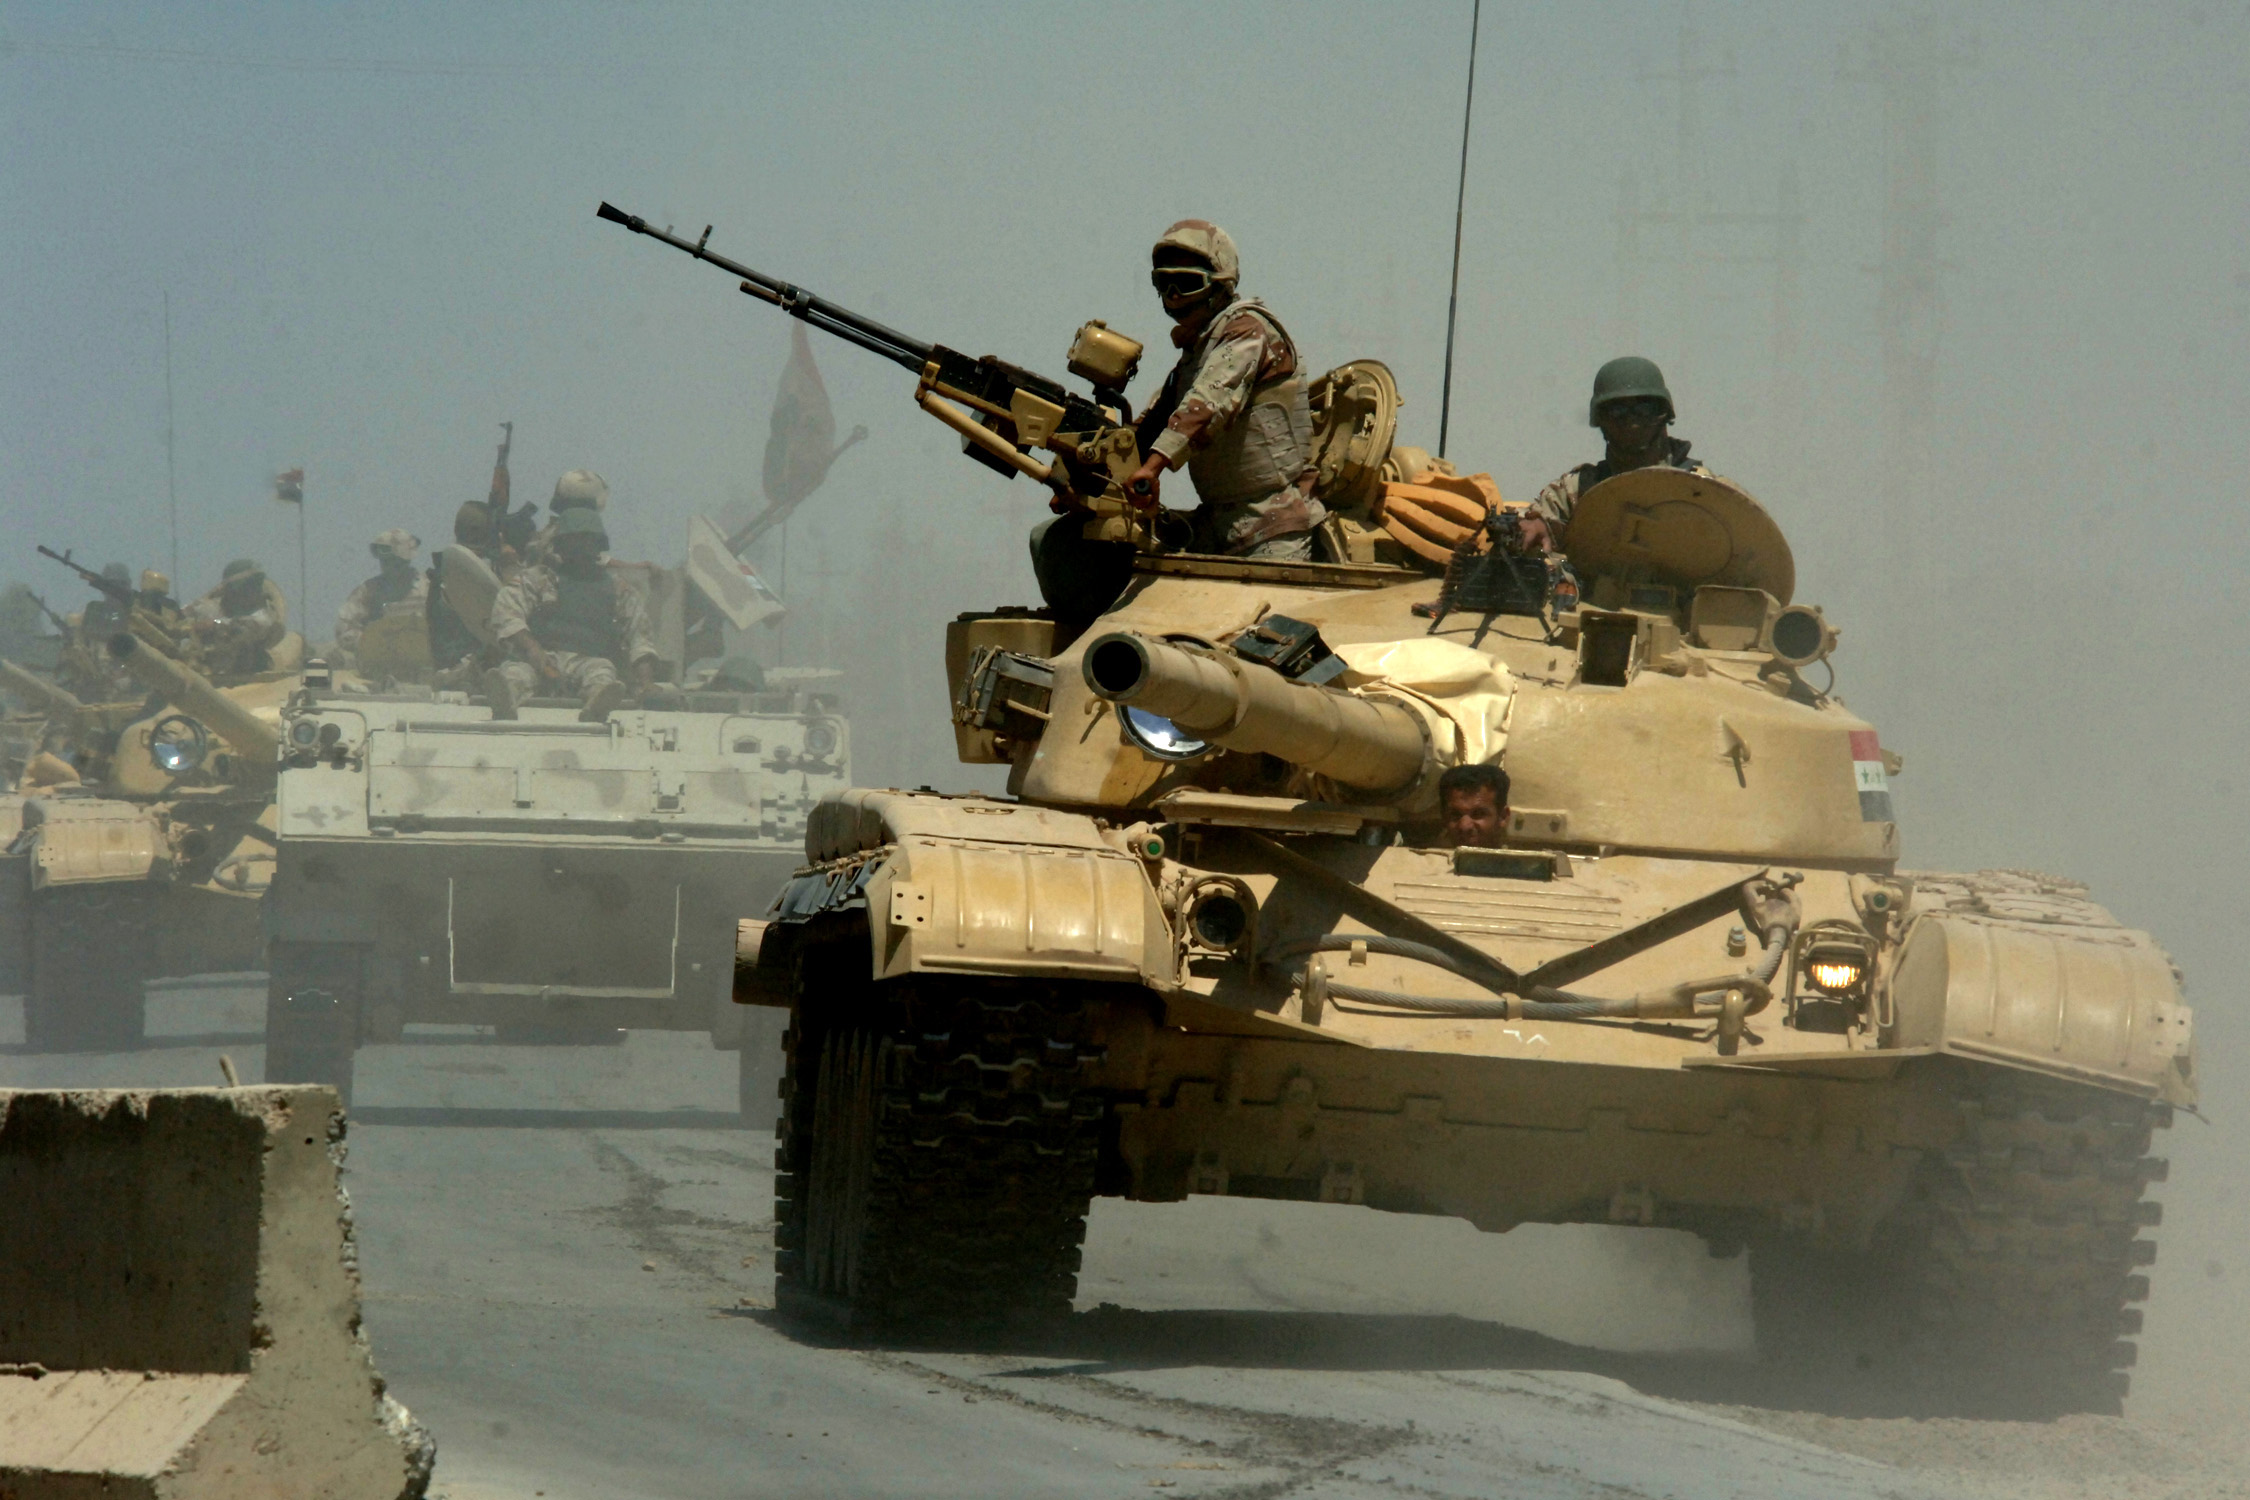 Iraqi_T-72_tanks_and_an_M113_APC_from_the_Iraqi_Army_9th_Mechanized_Division_pass_through_a_highway_checkpoint_in_Mushahada,_Iraq.jpg